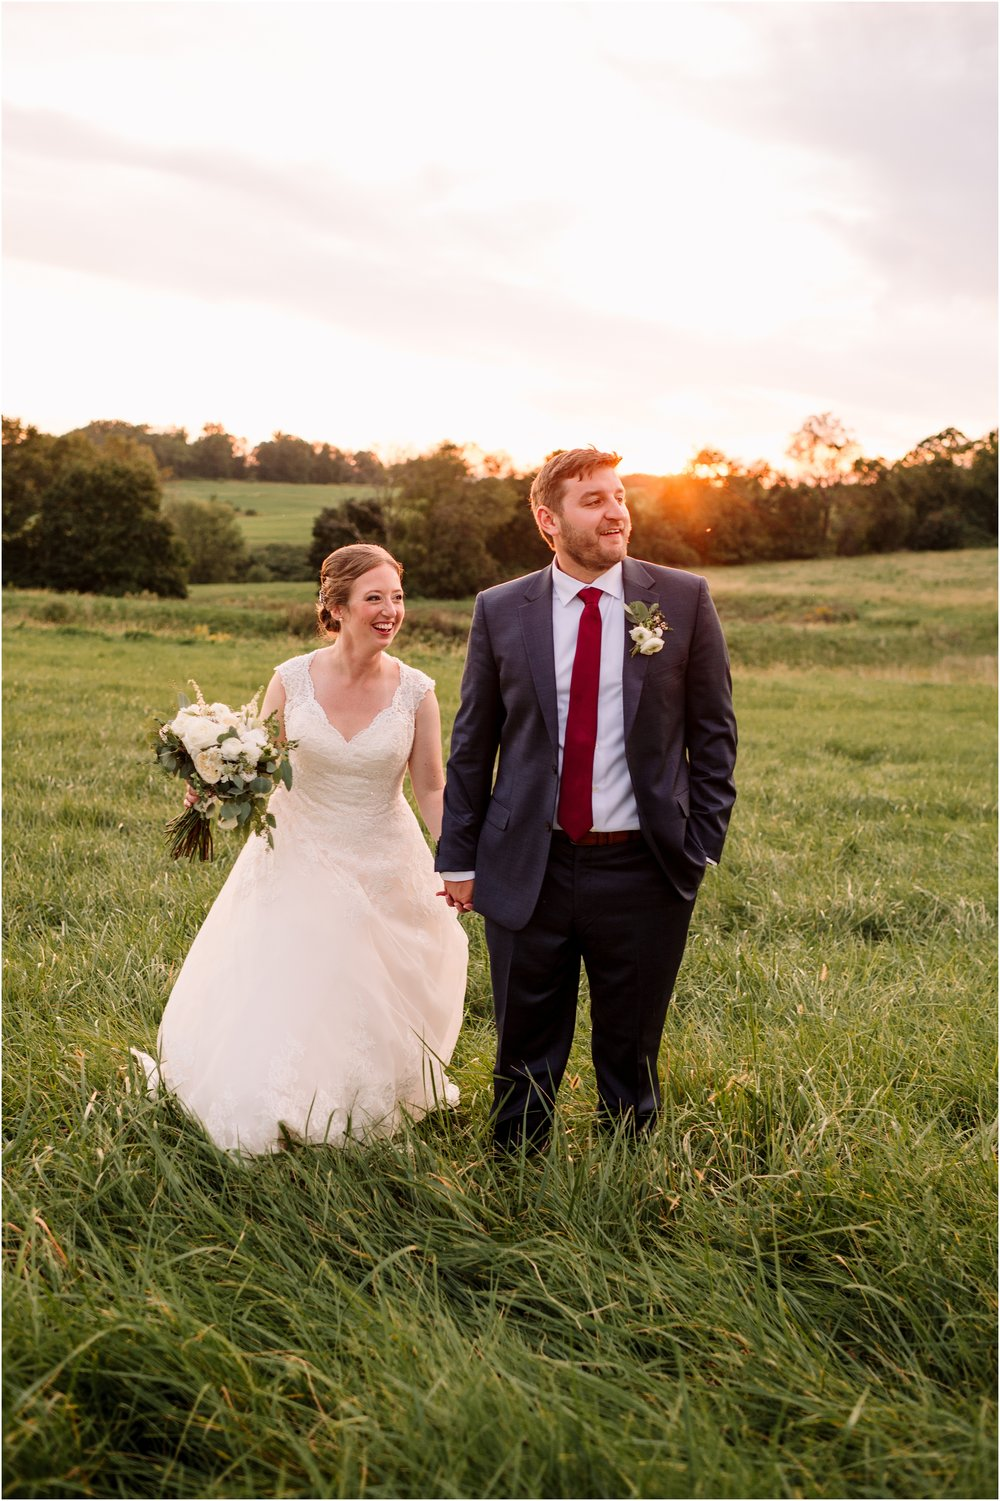 hannah leigh photography Wyndridge Farm Wedding York PA_1564.jpg